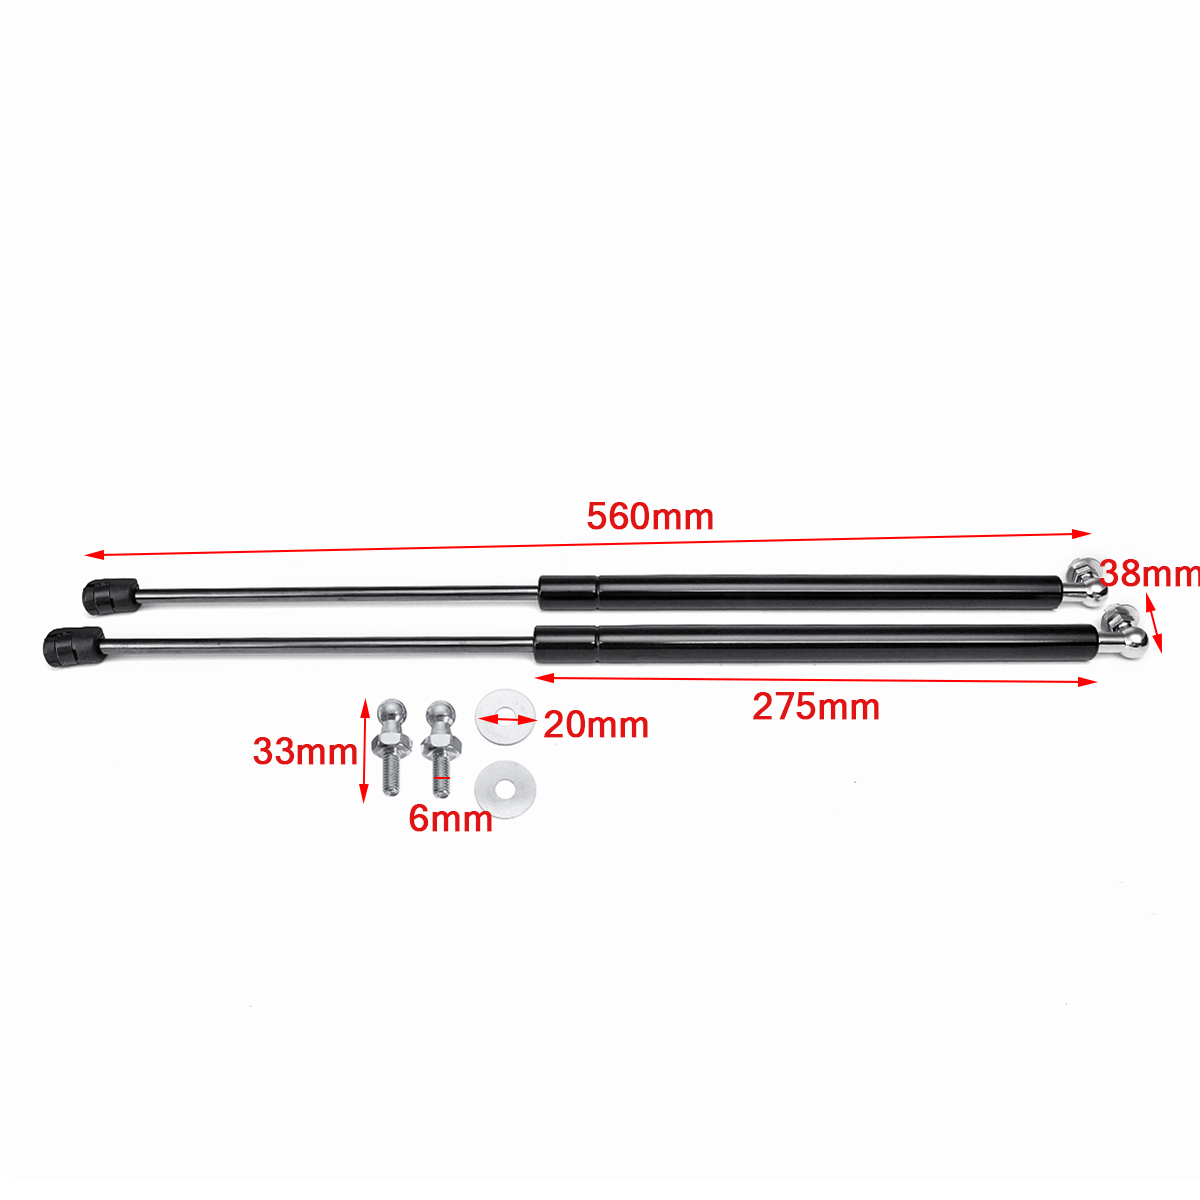 Image 3 - 2Pcs Car Gas Shock Hood Shock Strut Damper Lift Support for Skoda Octavia A7 MK3 Stainless Steel Hydraulic Rod Car Accessories-in Strut Bars from Automobiles & Motorcycles